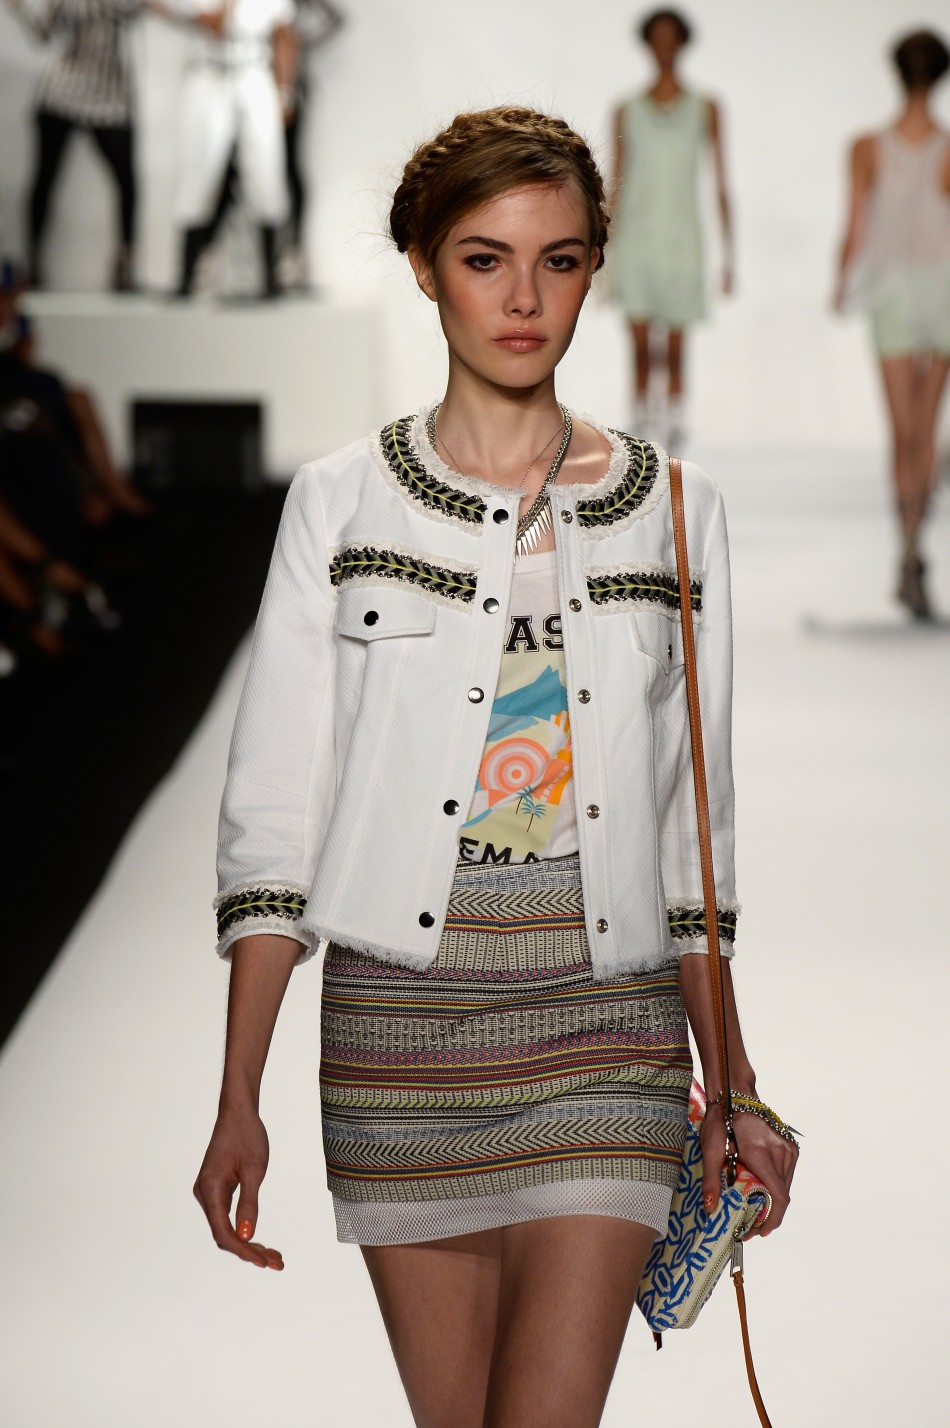 20590-rebecca-minkoff-spring-2014-new-york-fashion-week.jpg